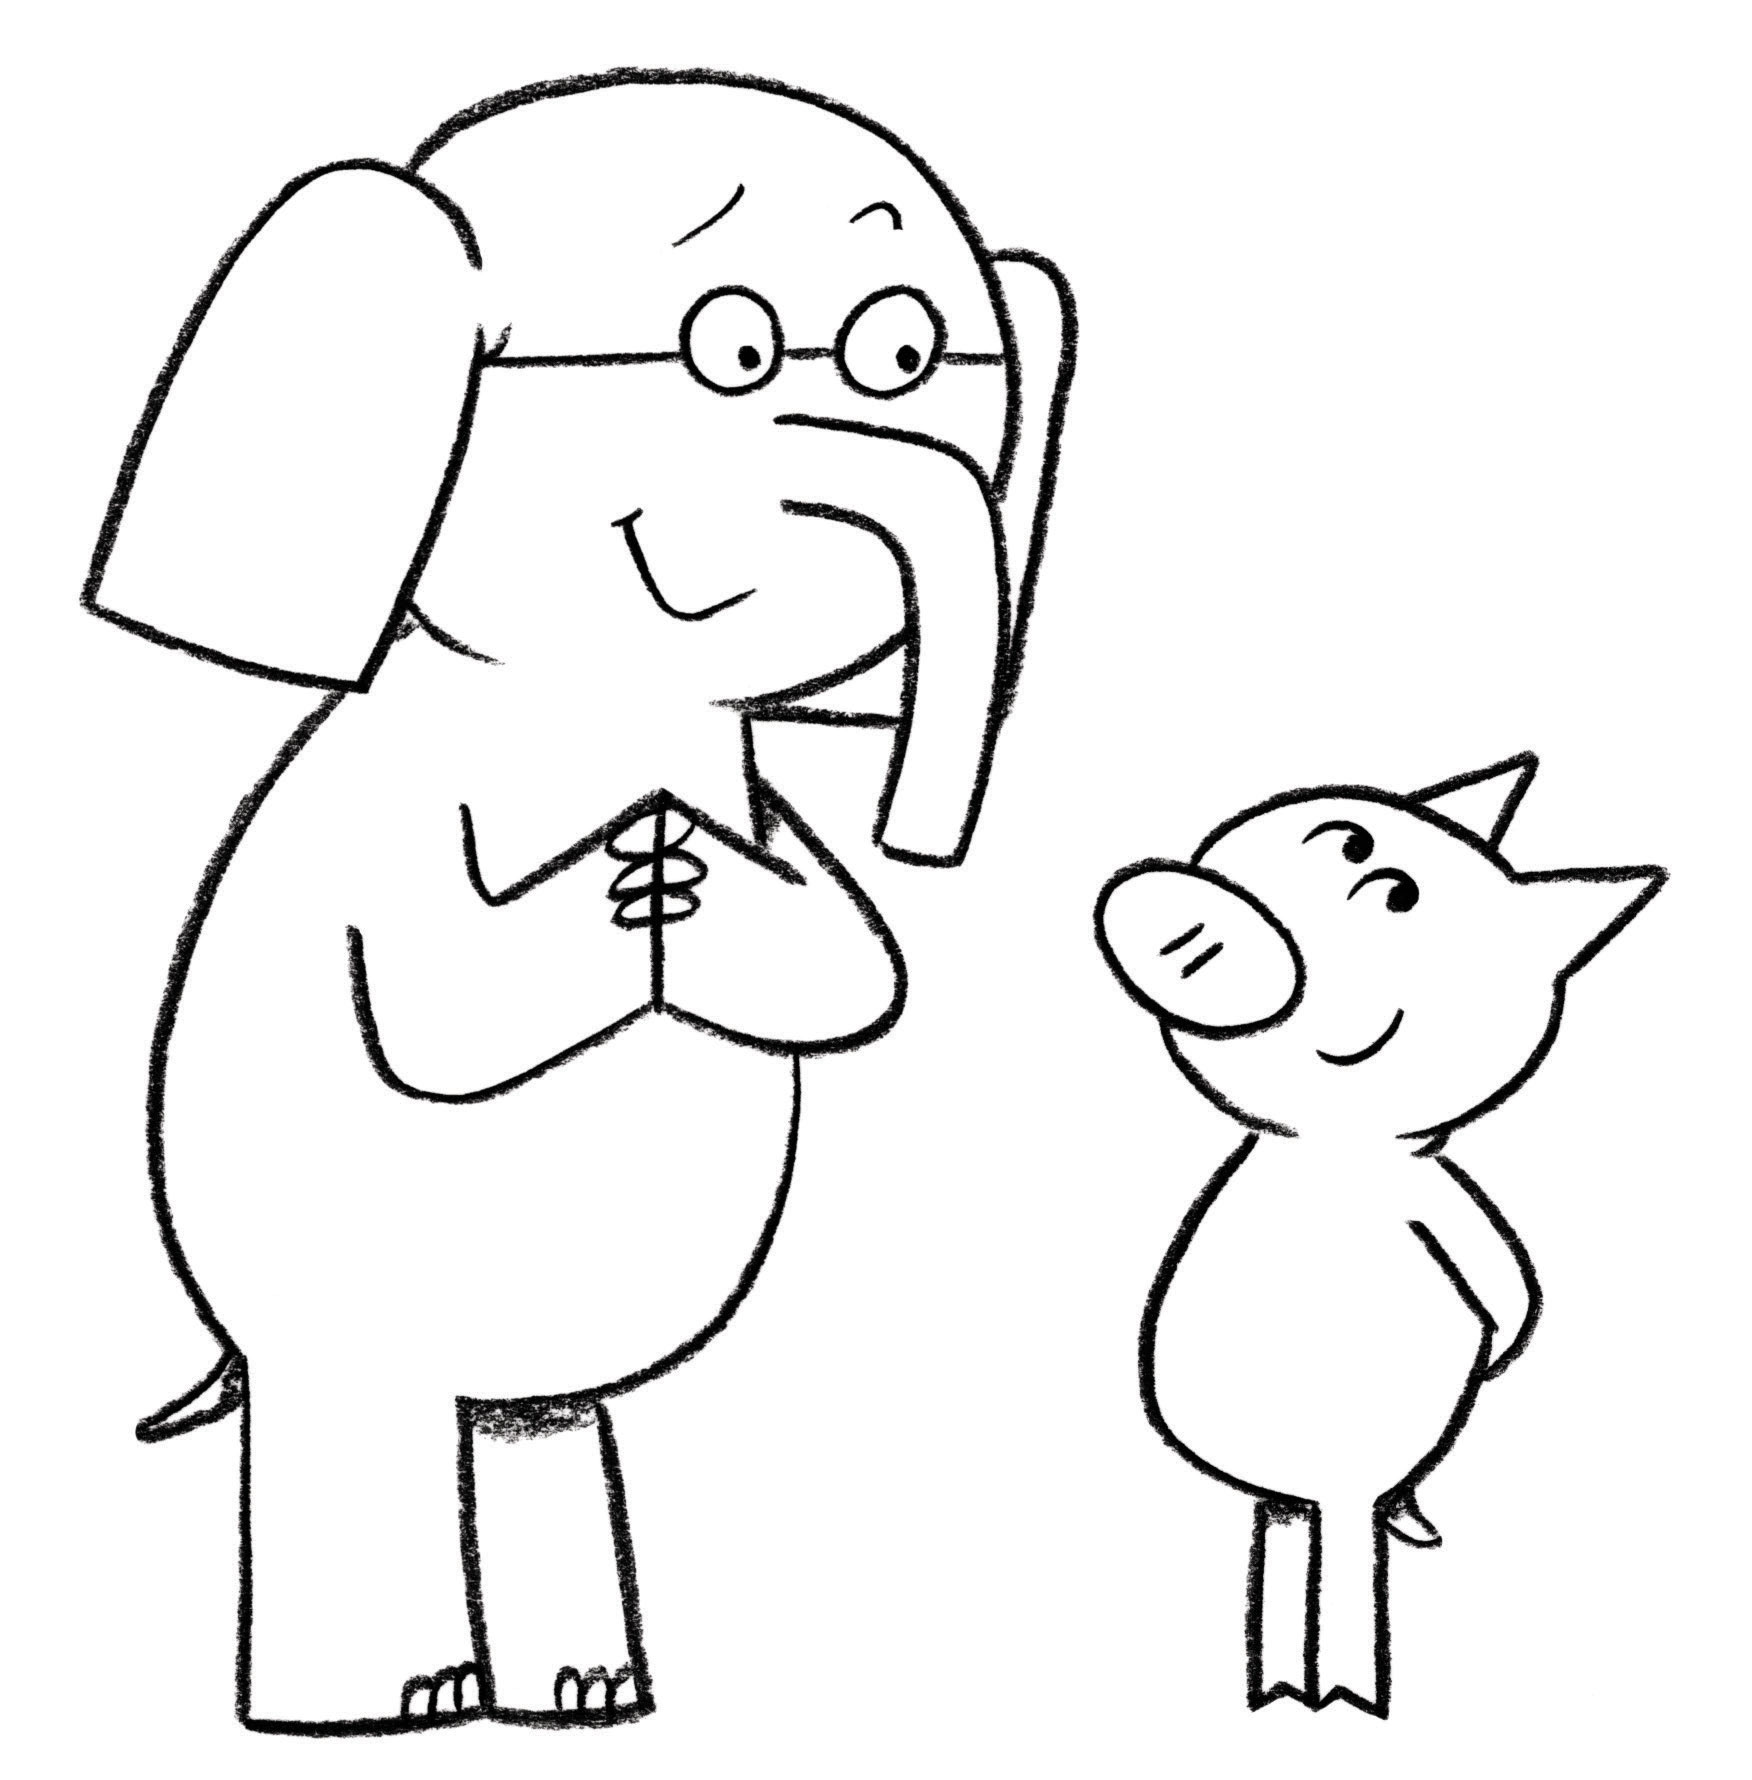 Elephant And Piggie Coloring Page Coloring Home - coloring page of elephant